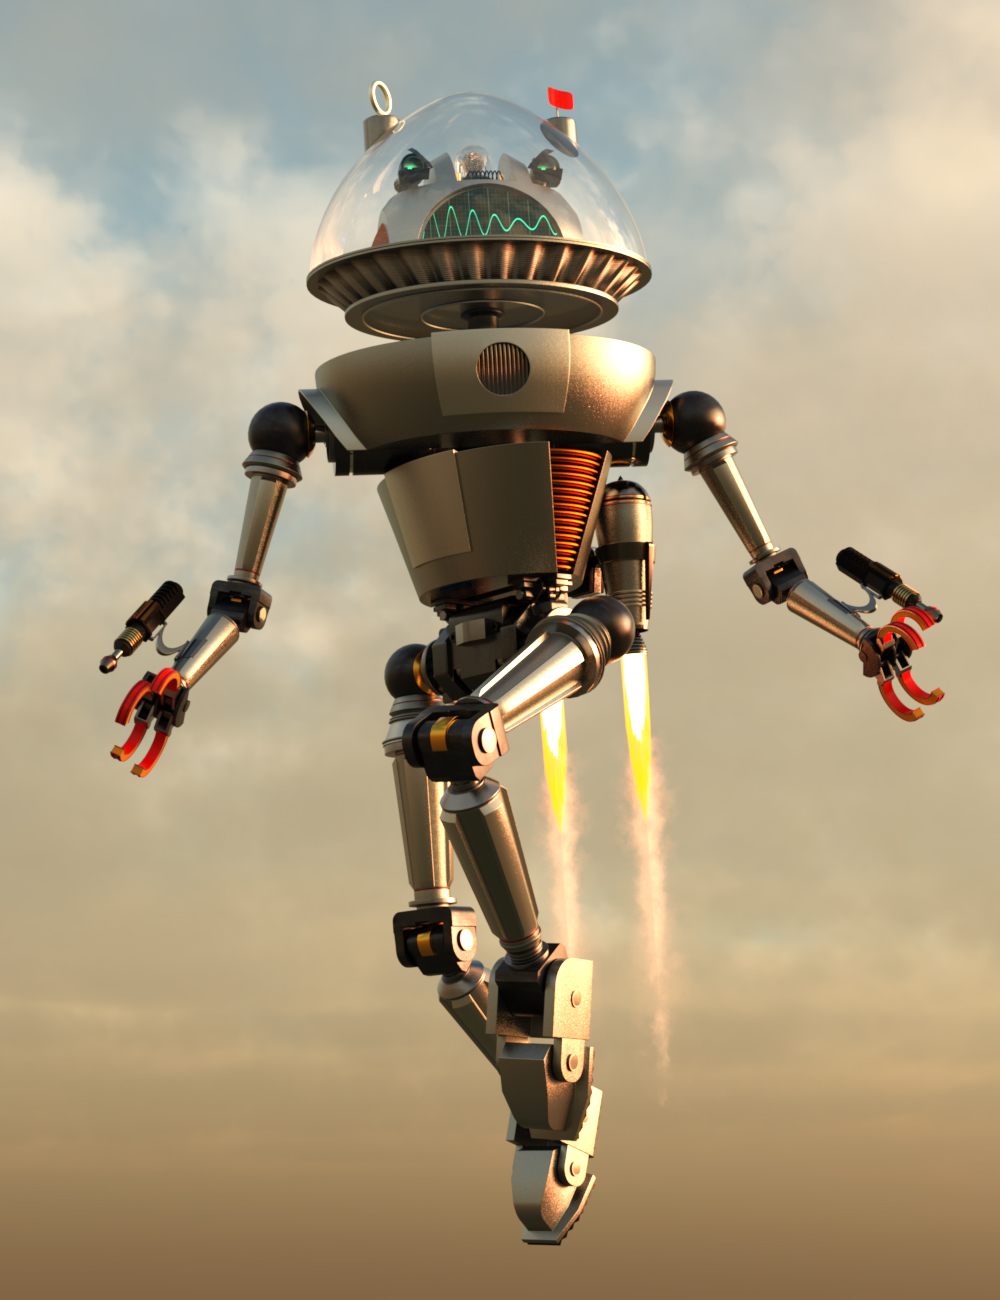 Robot X95A by: Those Things, 3D Models by Daz 3D